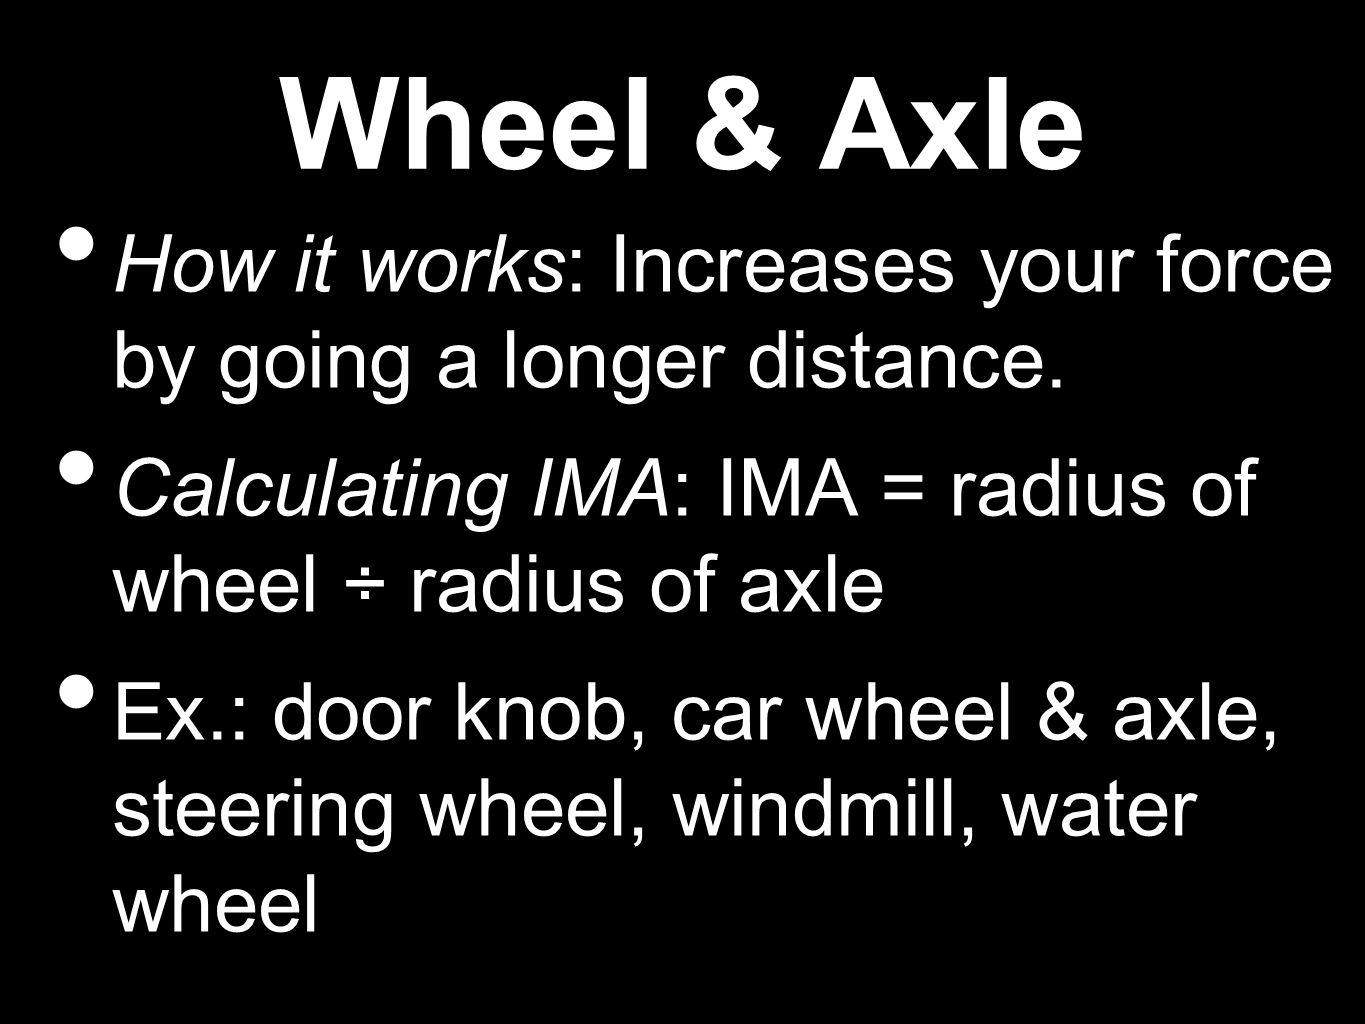 Wheel & Axle How it works: Increases your force by going a longer distance.